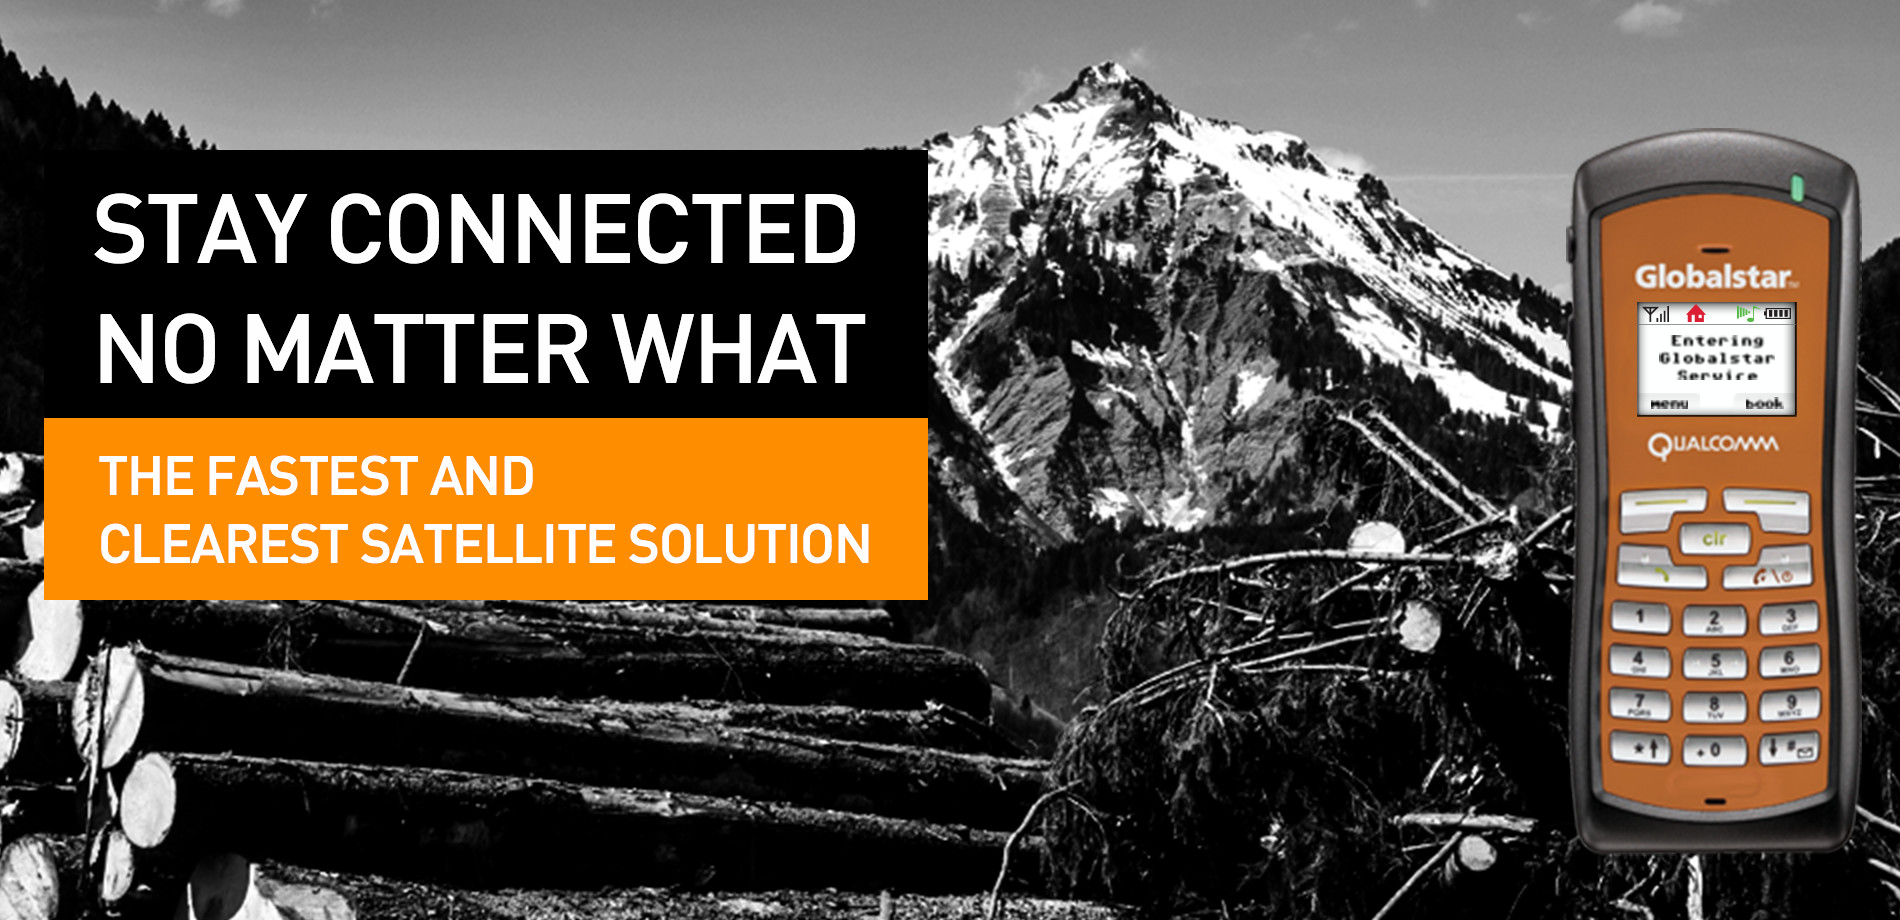 STAY CONNECTED NO MATTER WHAT - THE FASTEST AND CLEAREST SATELLITE SOLUTION